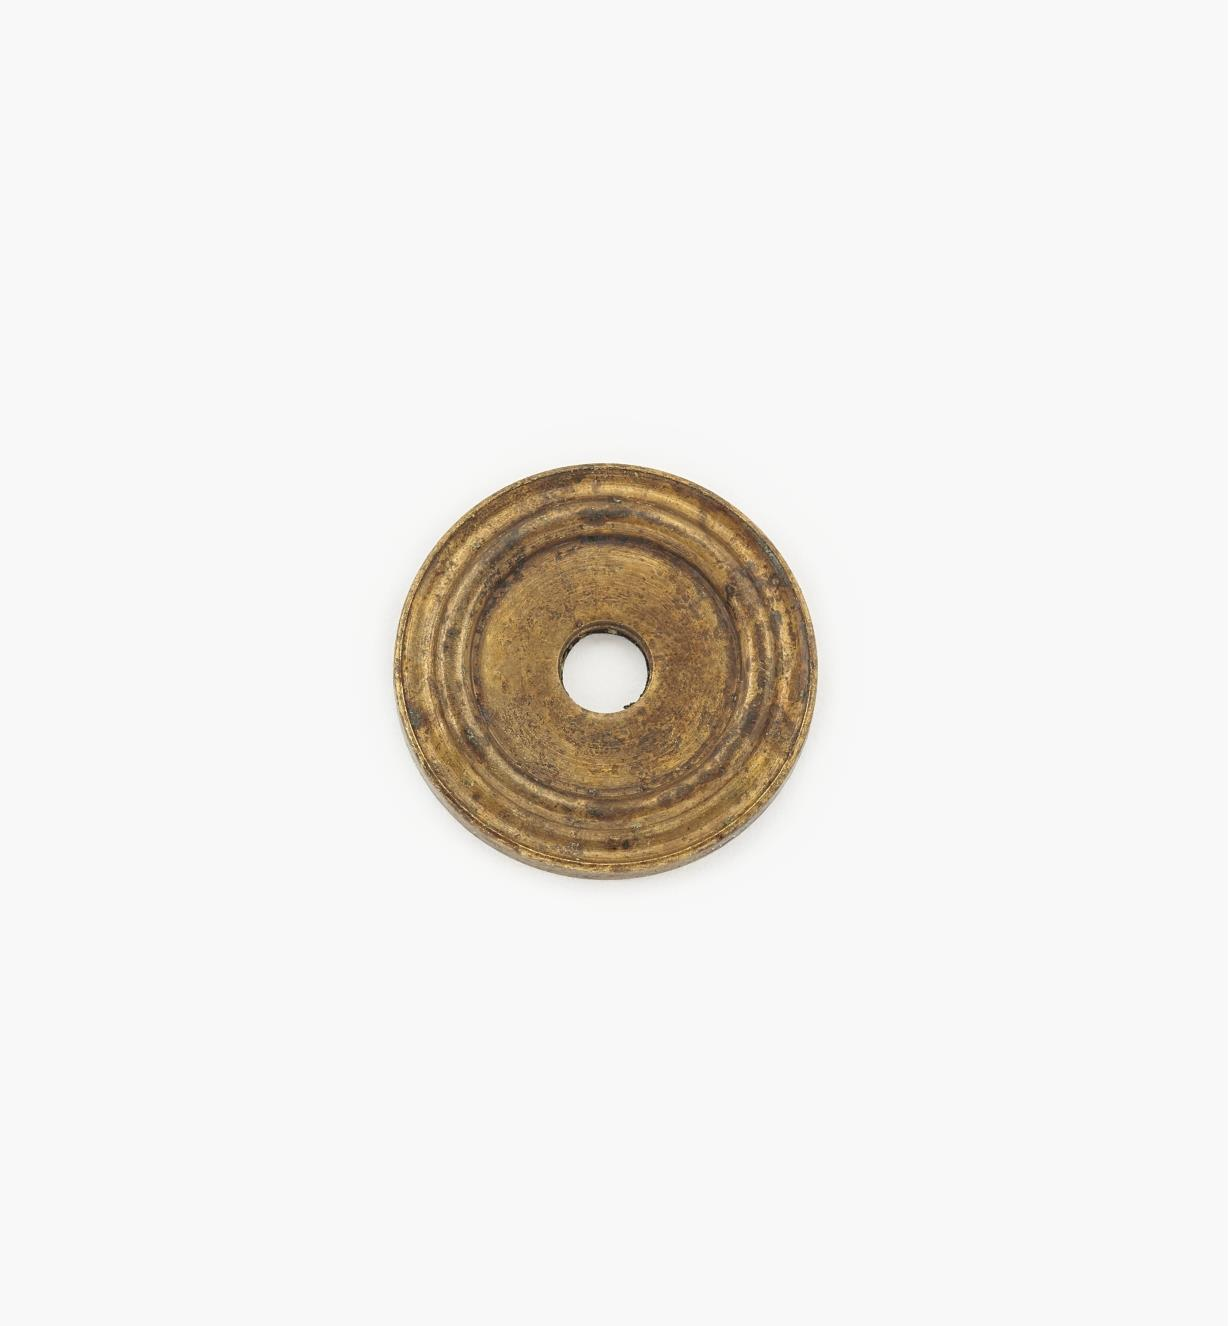 01A0721 - 20mm Old Brass Knob Escutcheon